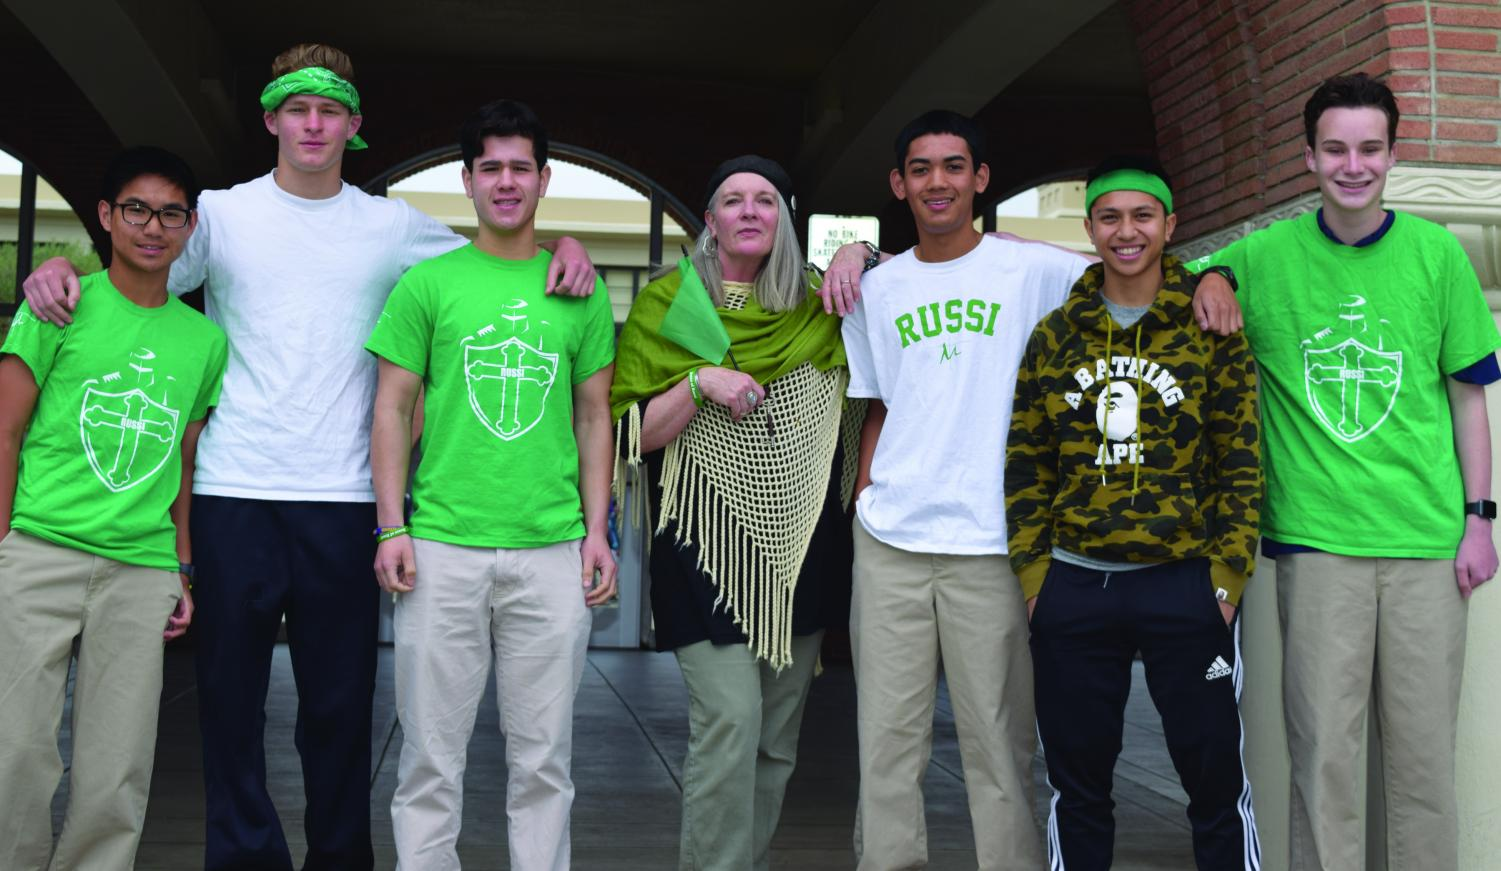 The House of Russi is represented by Brandan Lee '21, Tarik Shami '18, Hunter Harold '18, Provincial Valerie O'Riordan, Brandon Vargas '20, Zach Quanico '19, and Antonio Maffei '20.